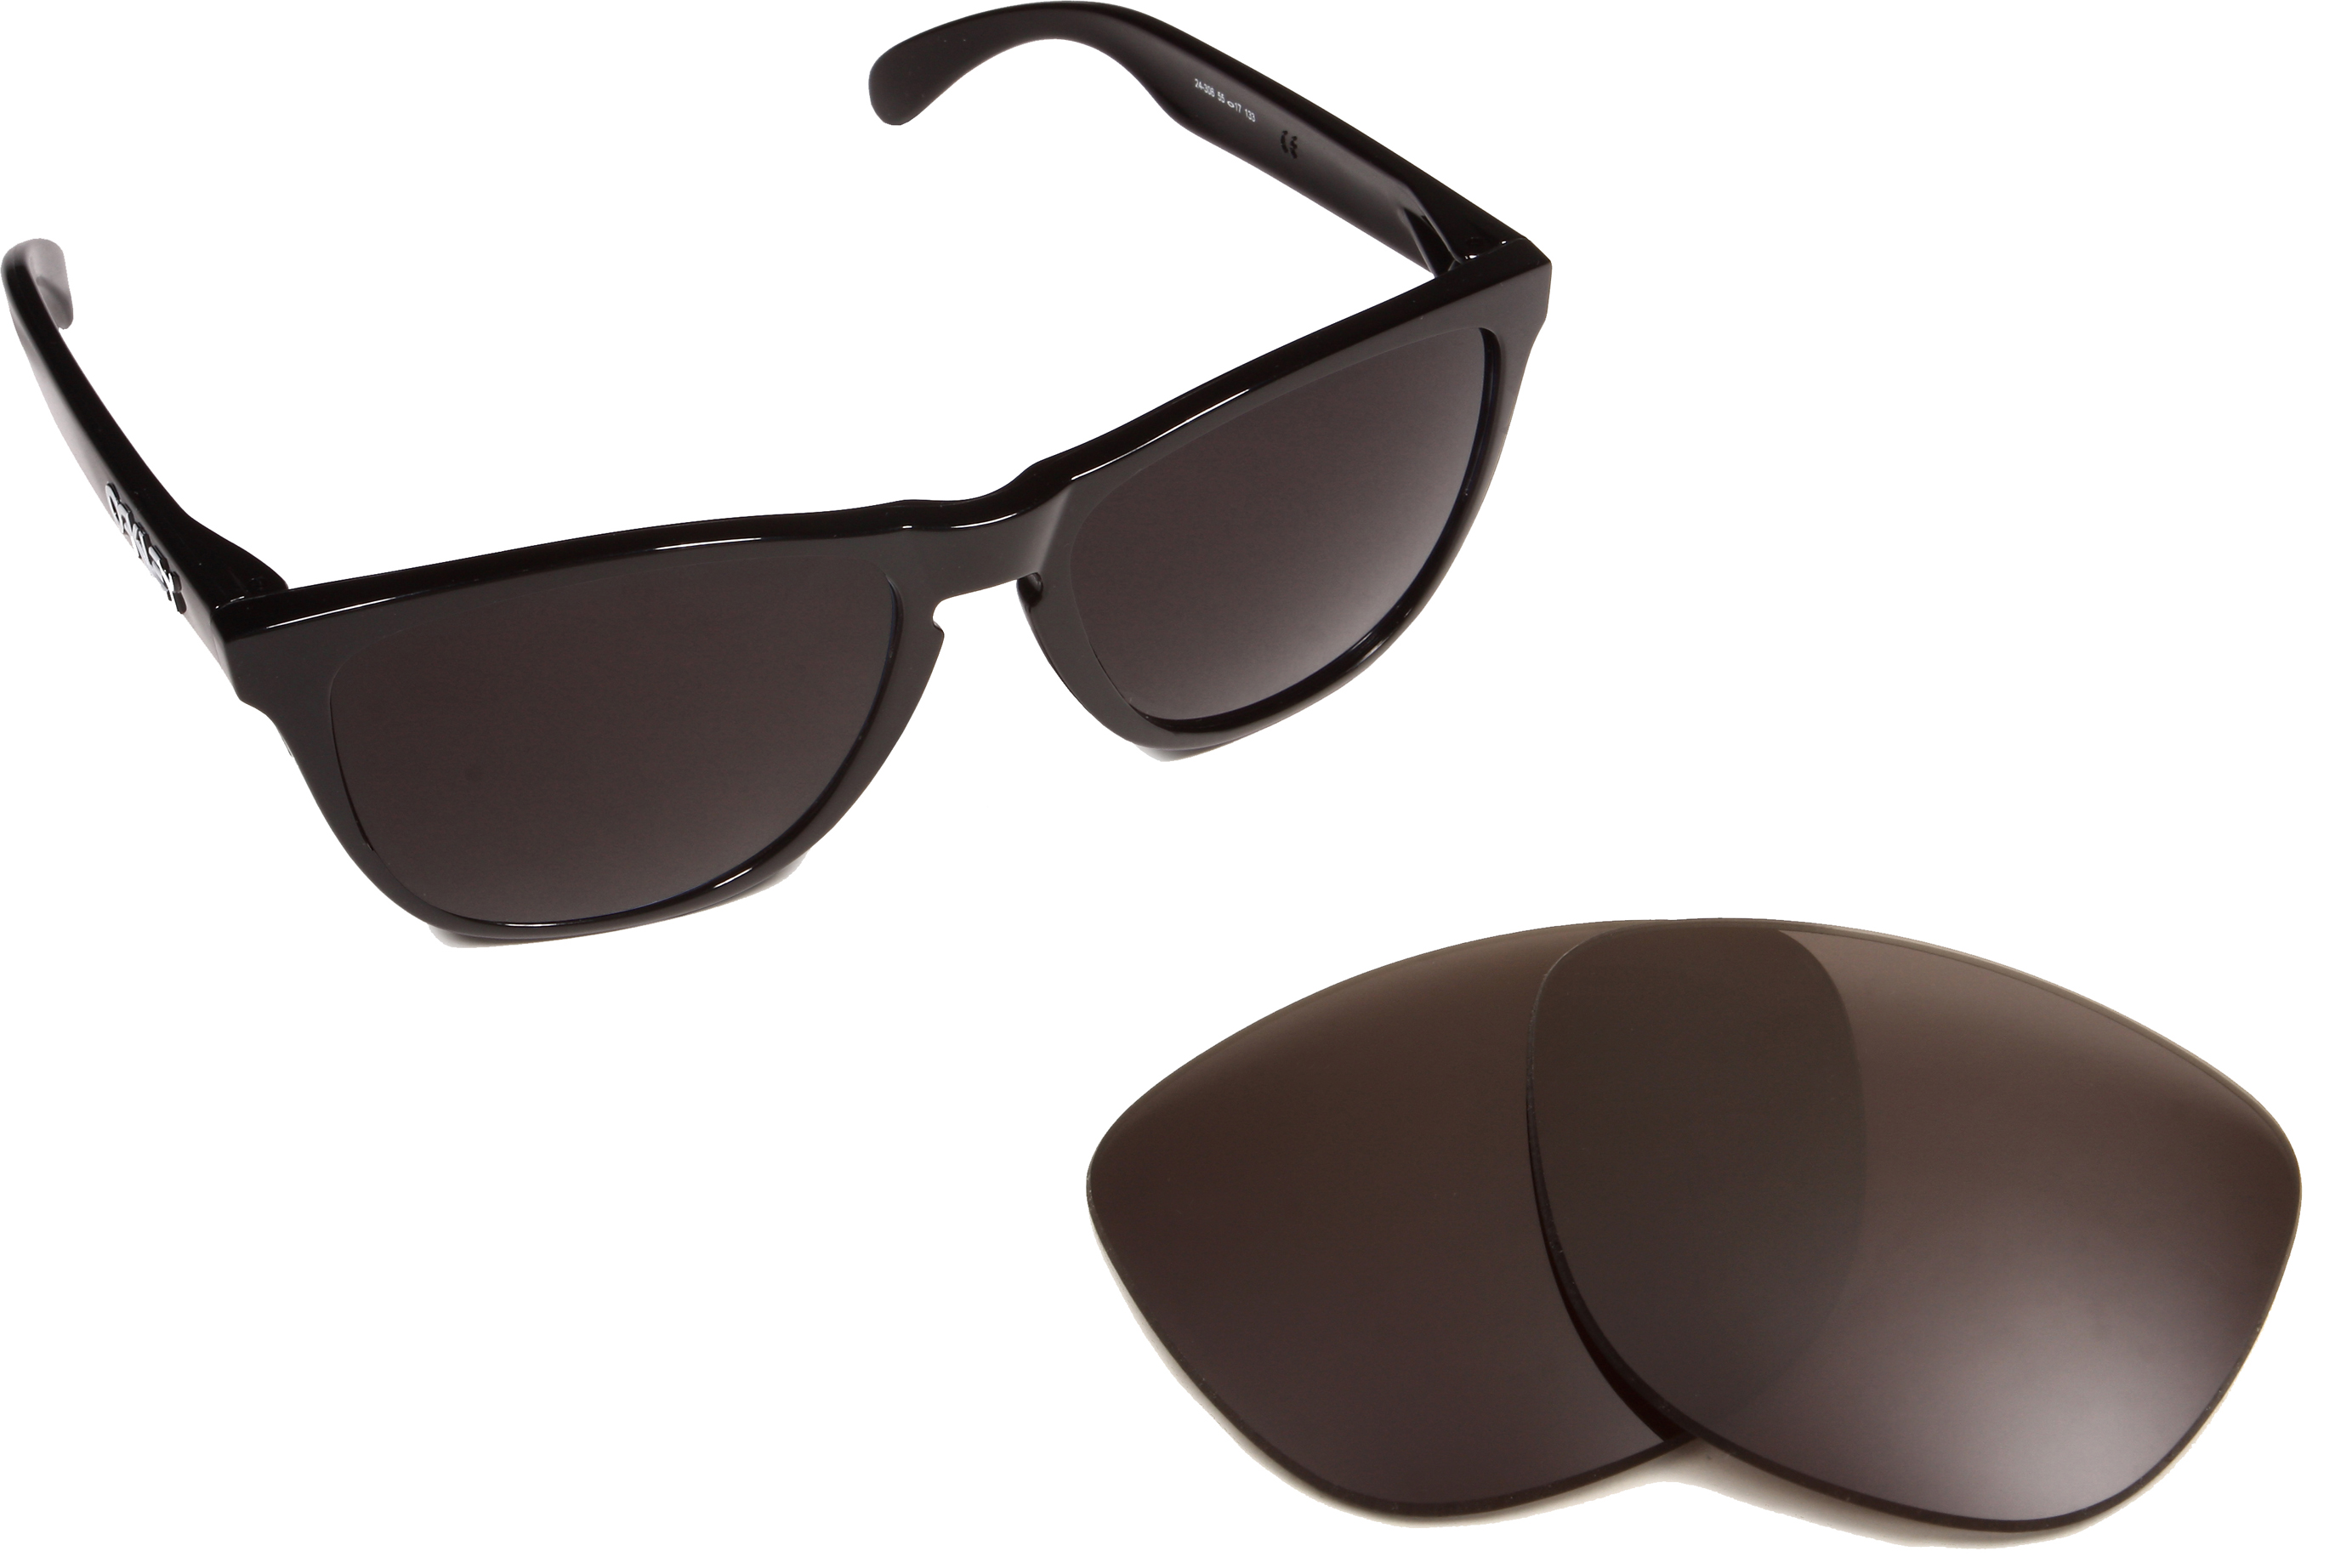 4028bc36ef77a Frogskins Replacement Lenses Polarized Grey by SEEK fits OAKLEY Sunglasses